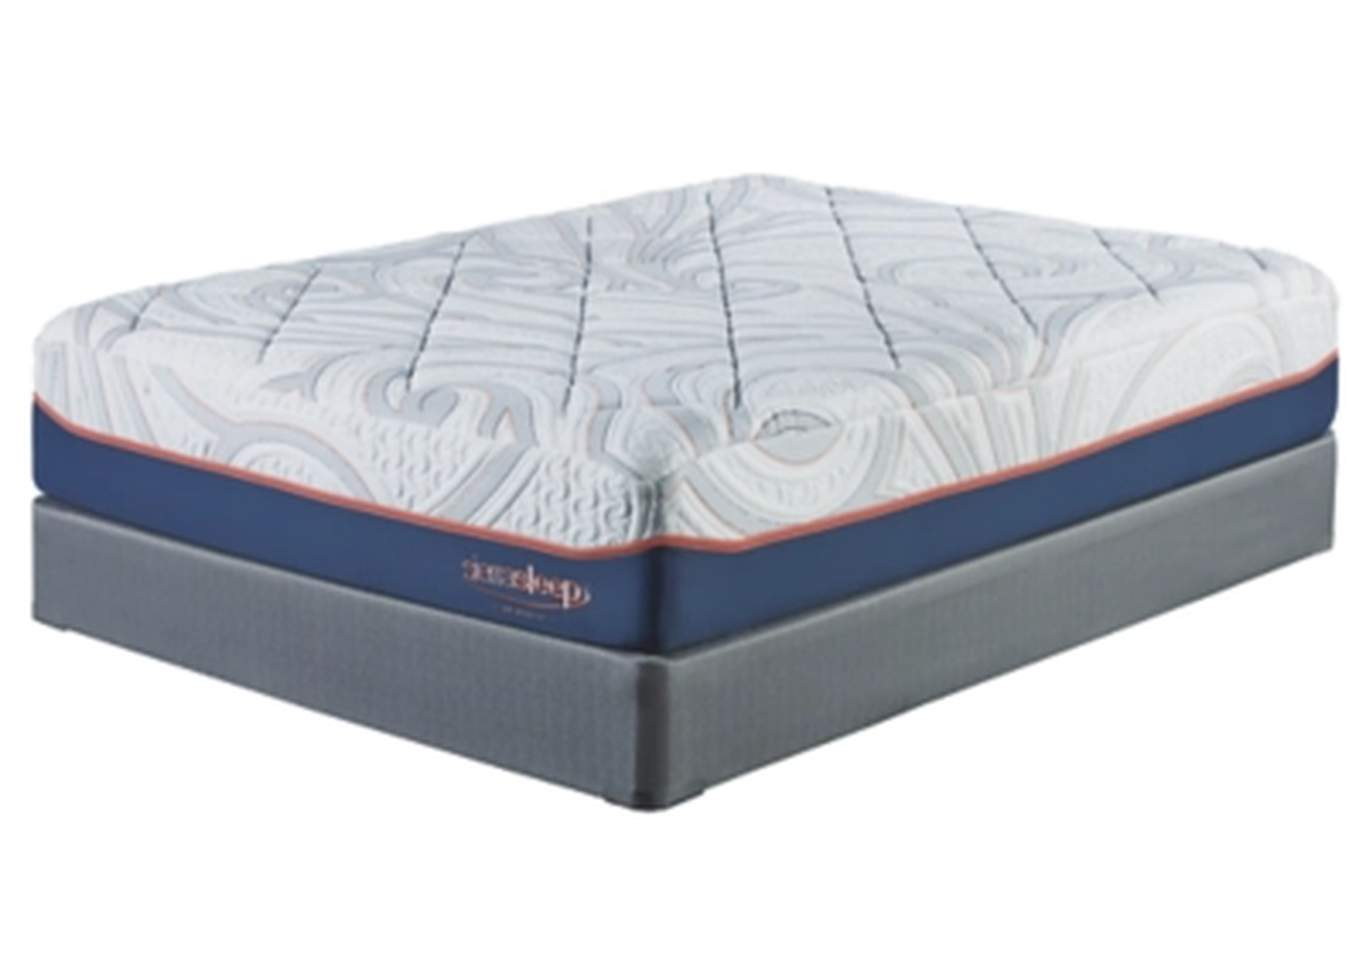 14 Inch MyGel King Mattress,Sierra Sleep by Ashley